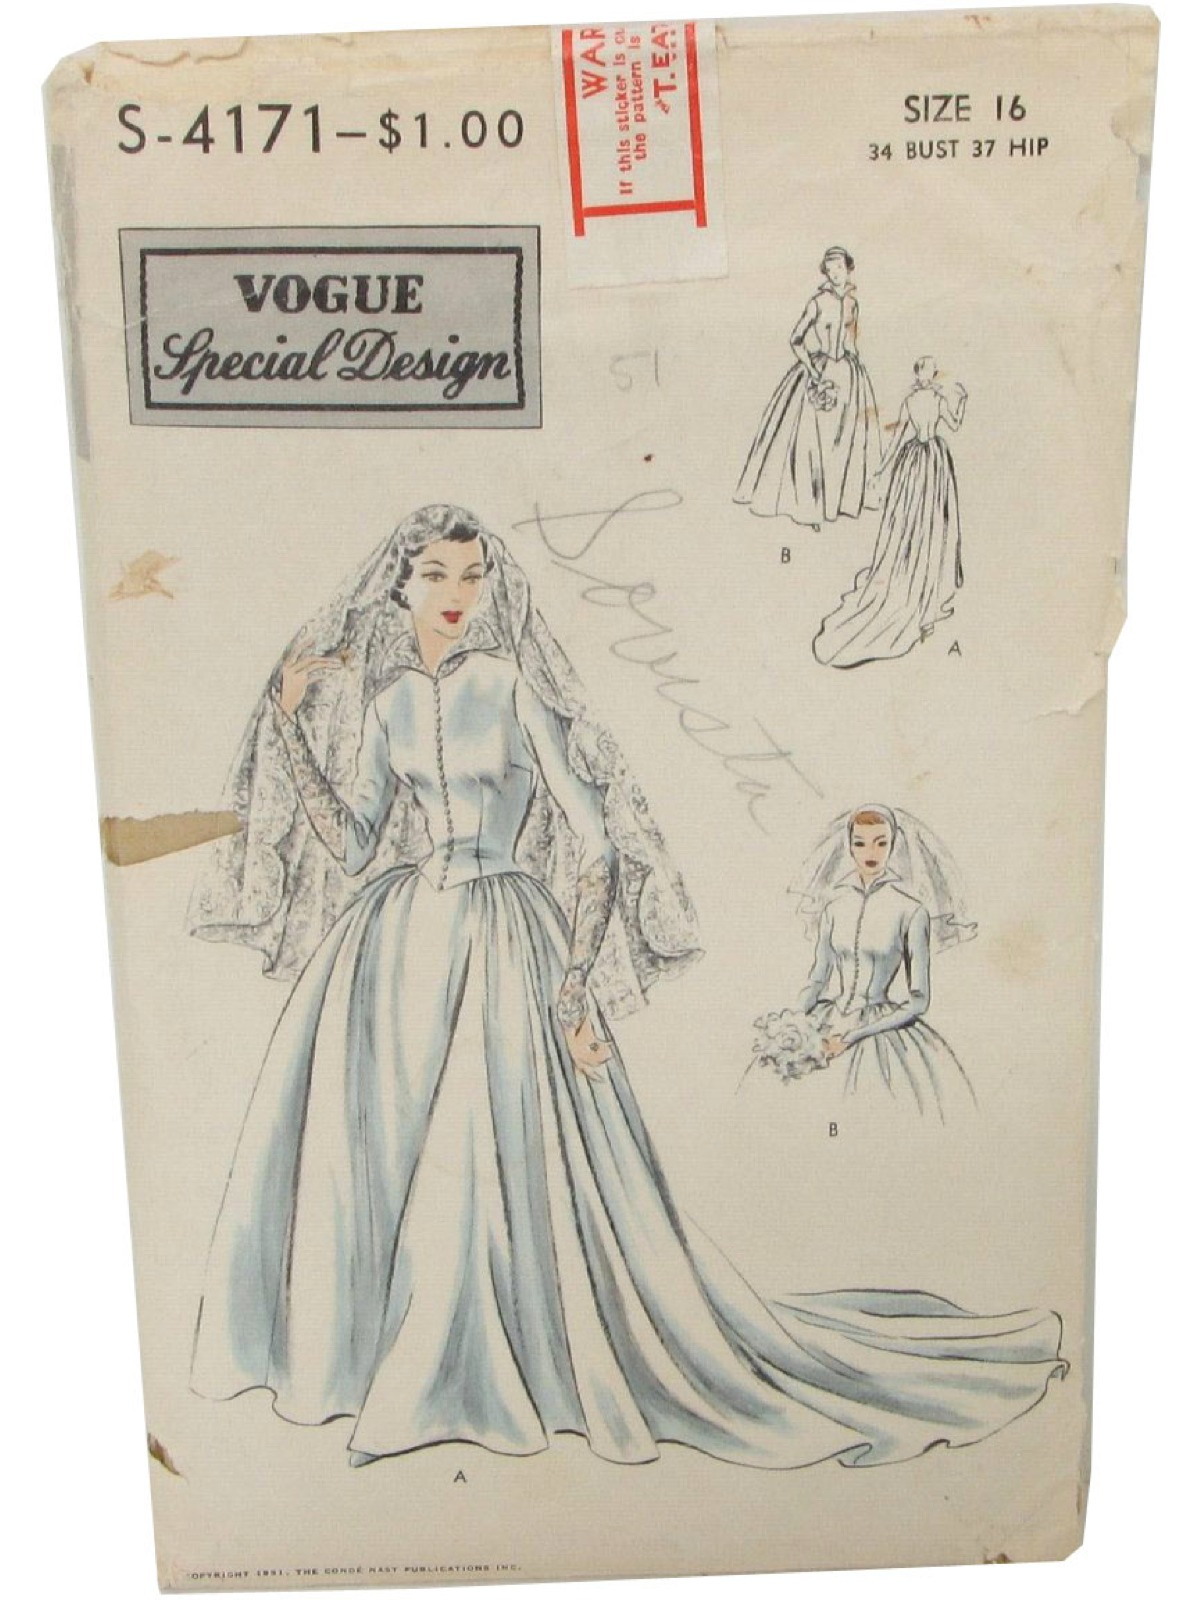 50s sewing pattern 50s vogue s4171 vogue special design brides 50s sewing pattern 50s vogue s4171 vogue special design brides or bridesmaid dress gored skirt shaped back dropped waist ombrellifo Images